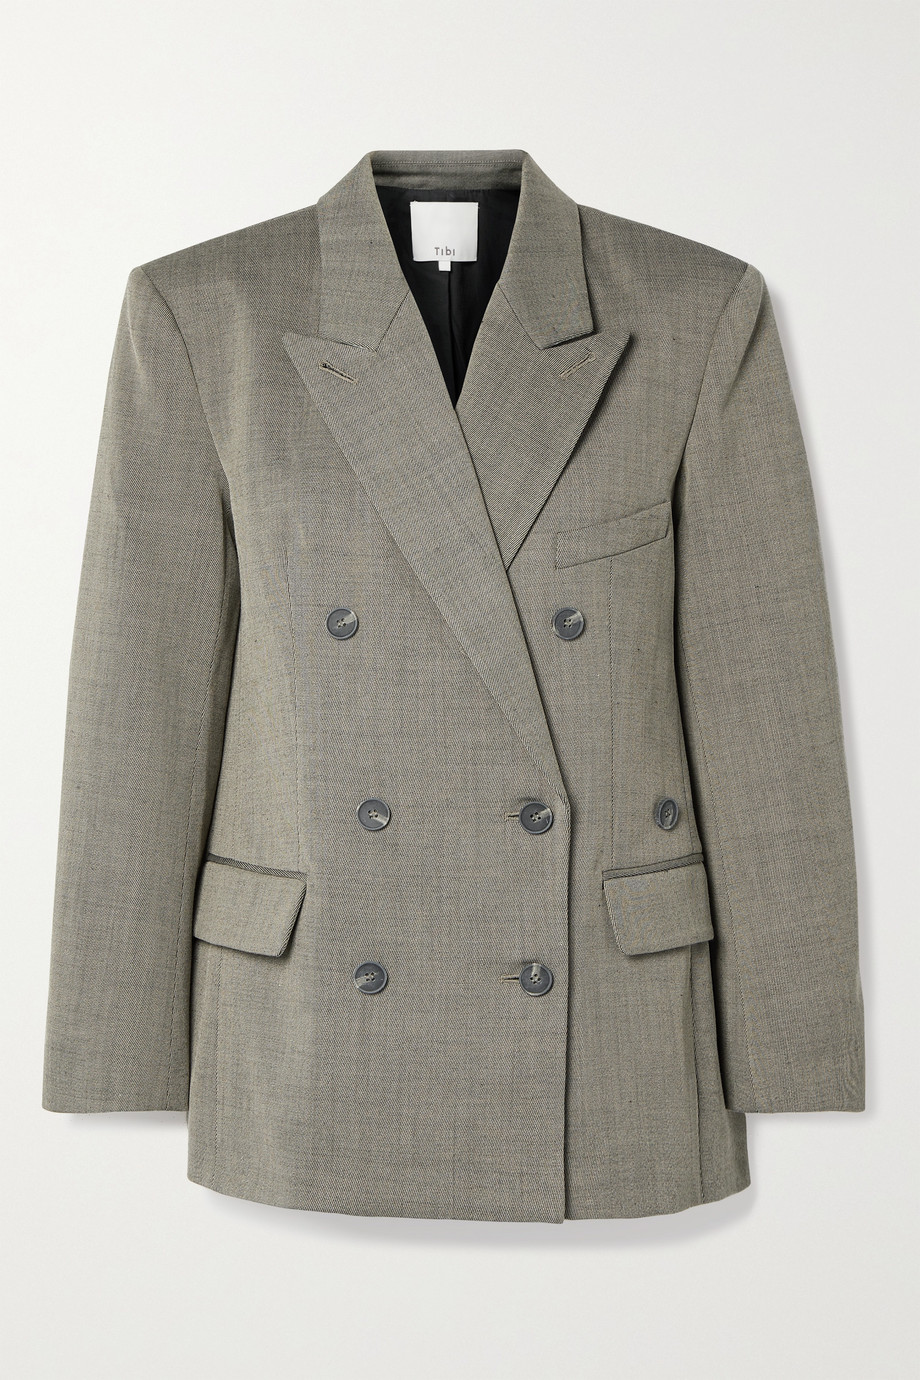 Tibi Luka double-breasted twill blazer